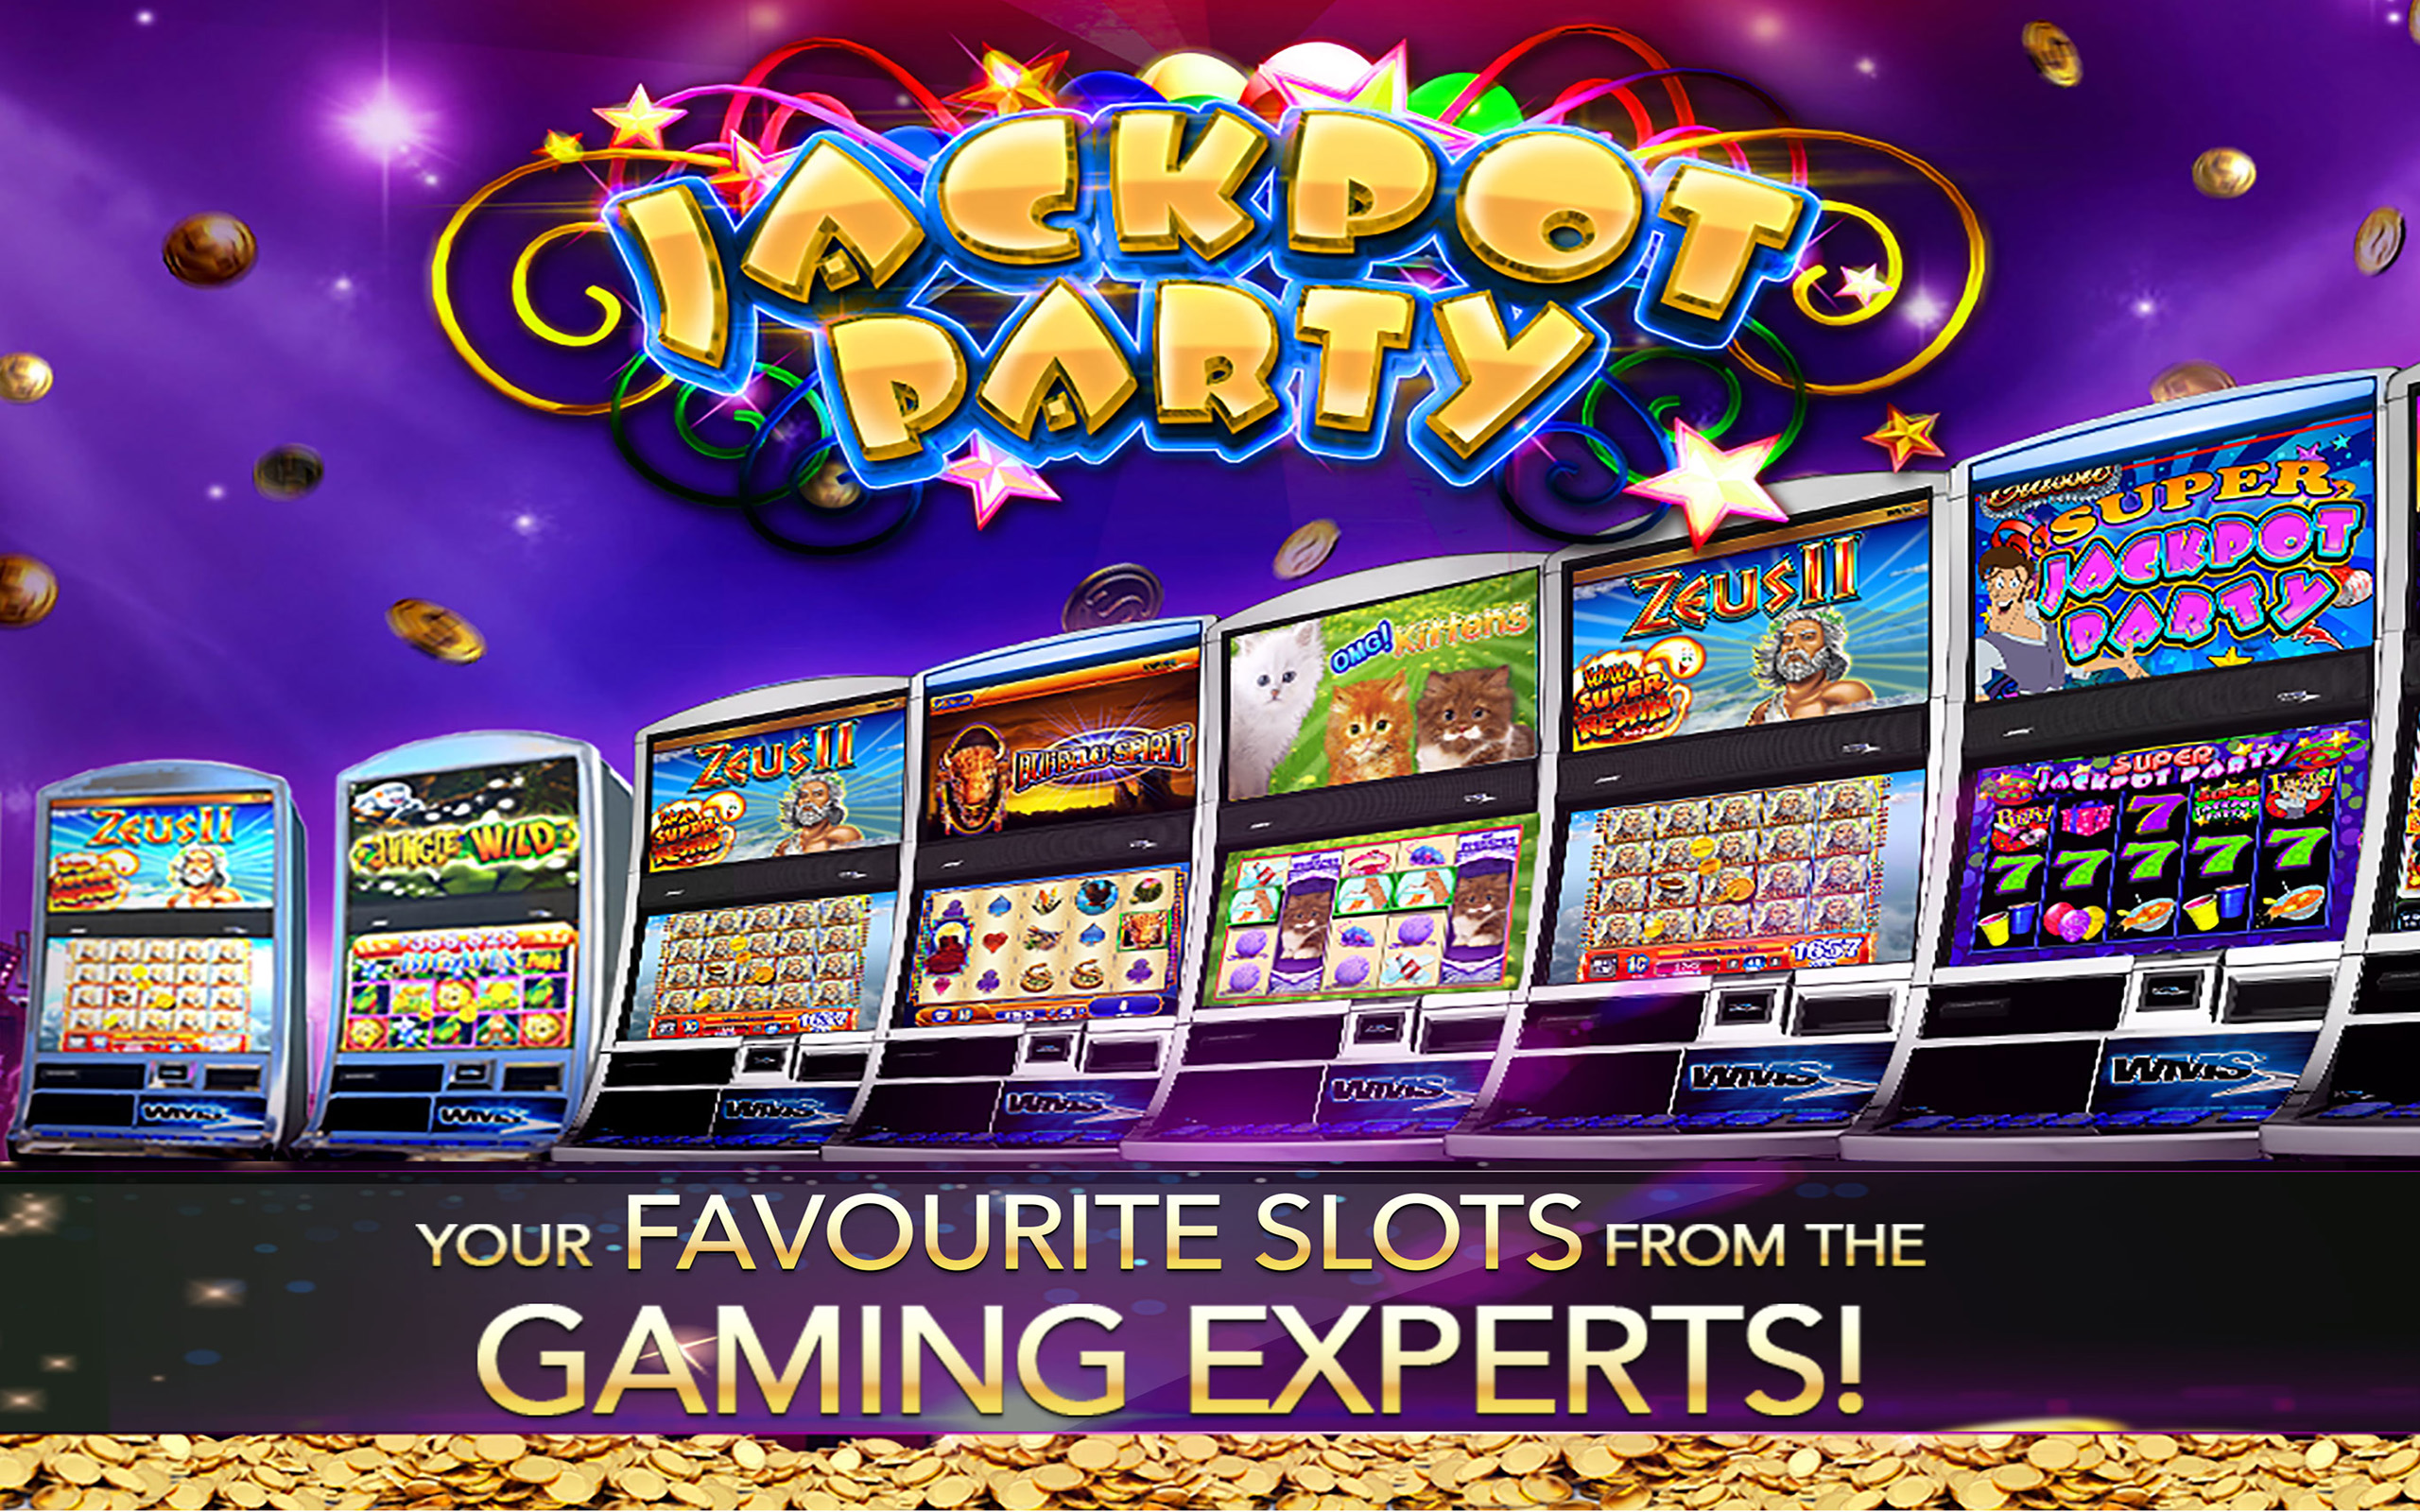 jackpot party casino slots play online - yahoo games